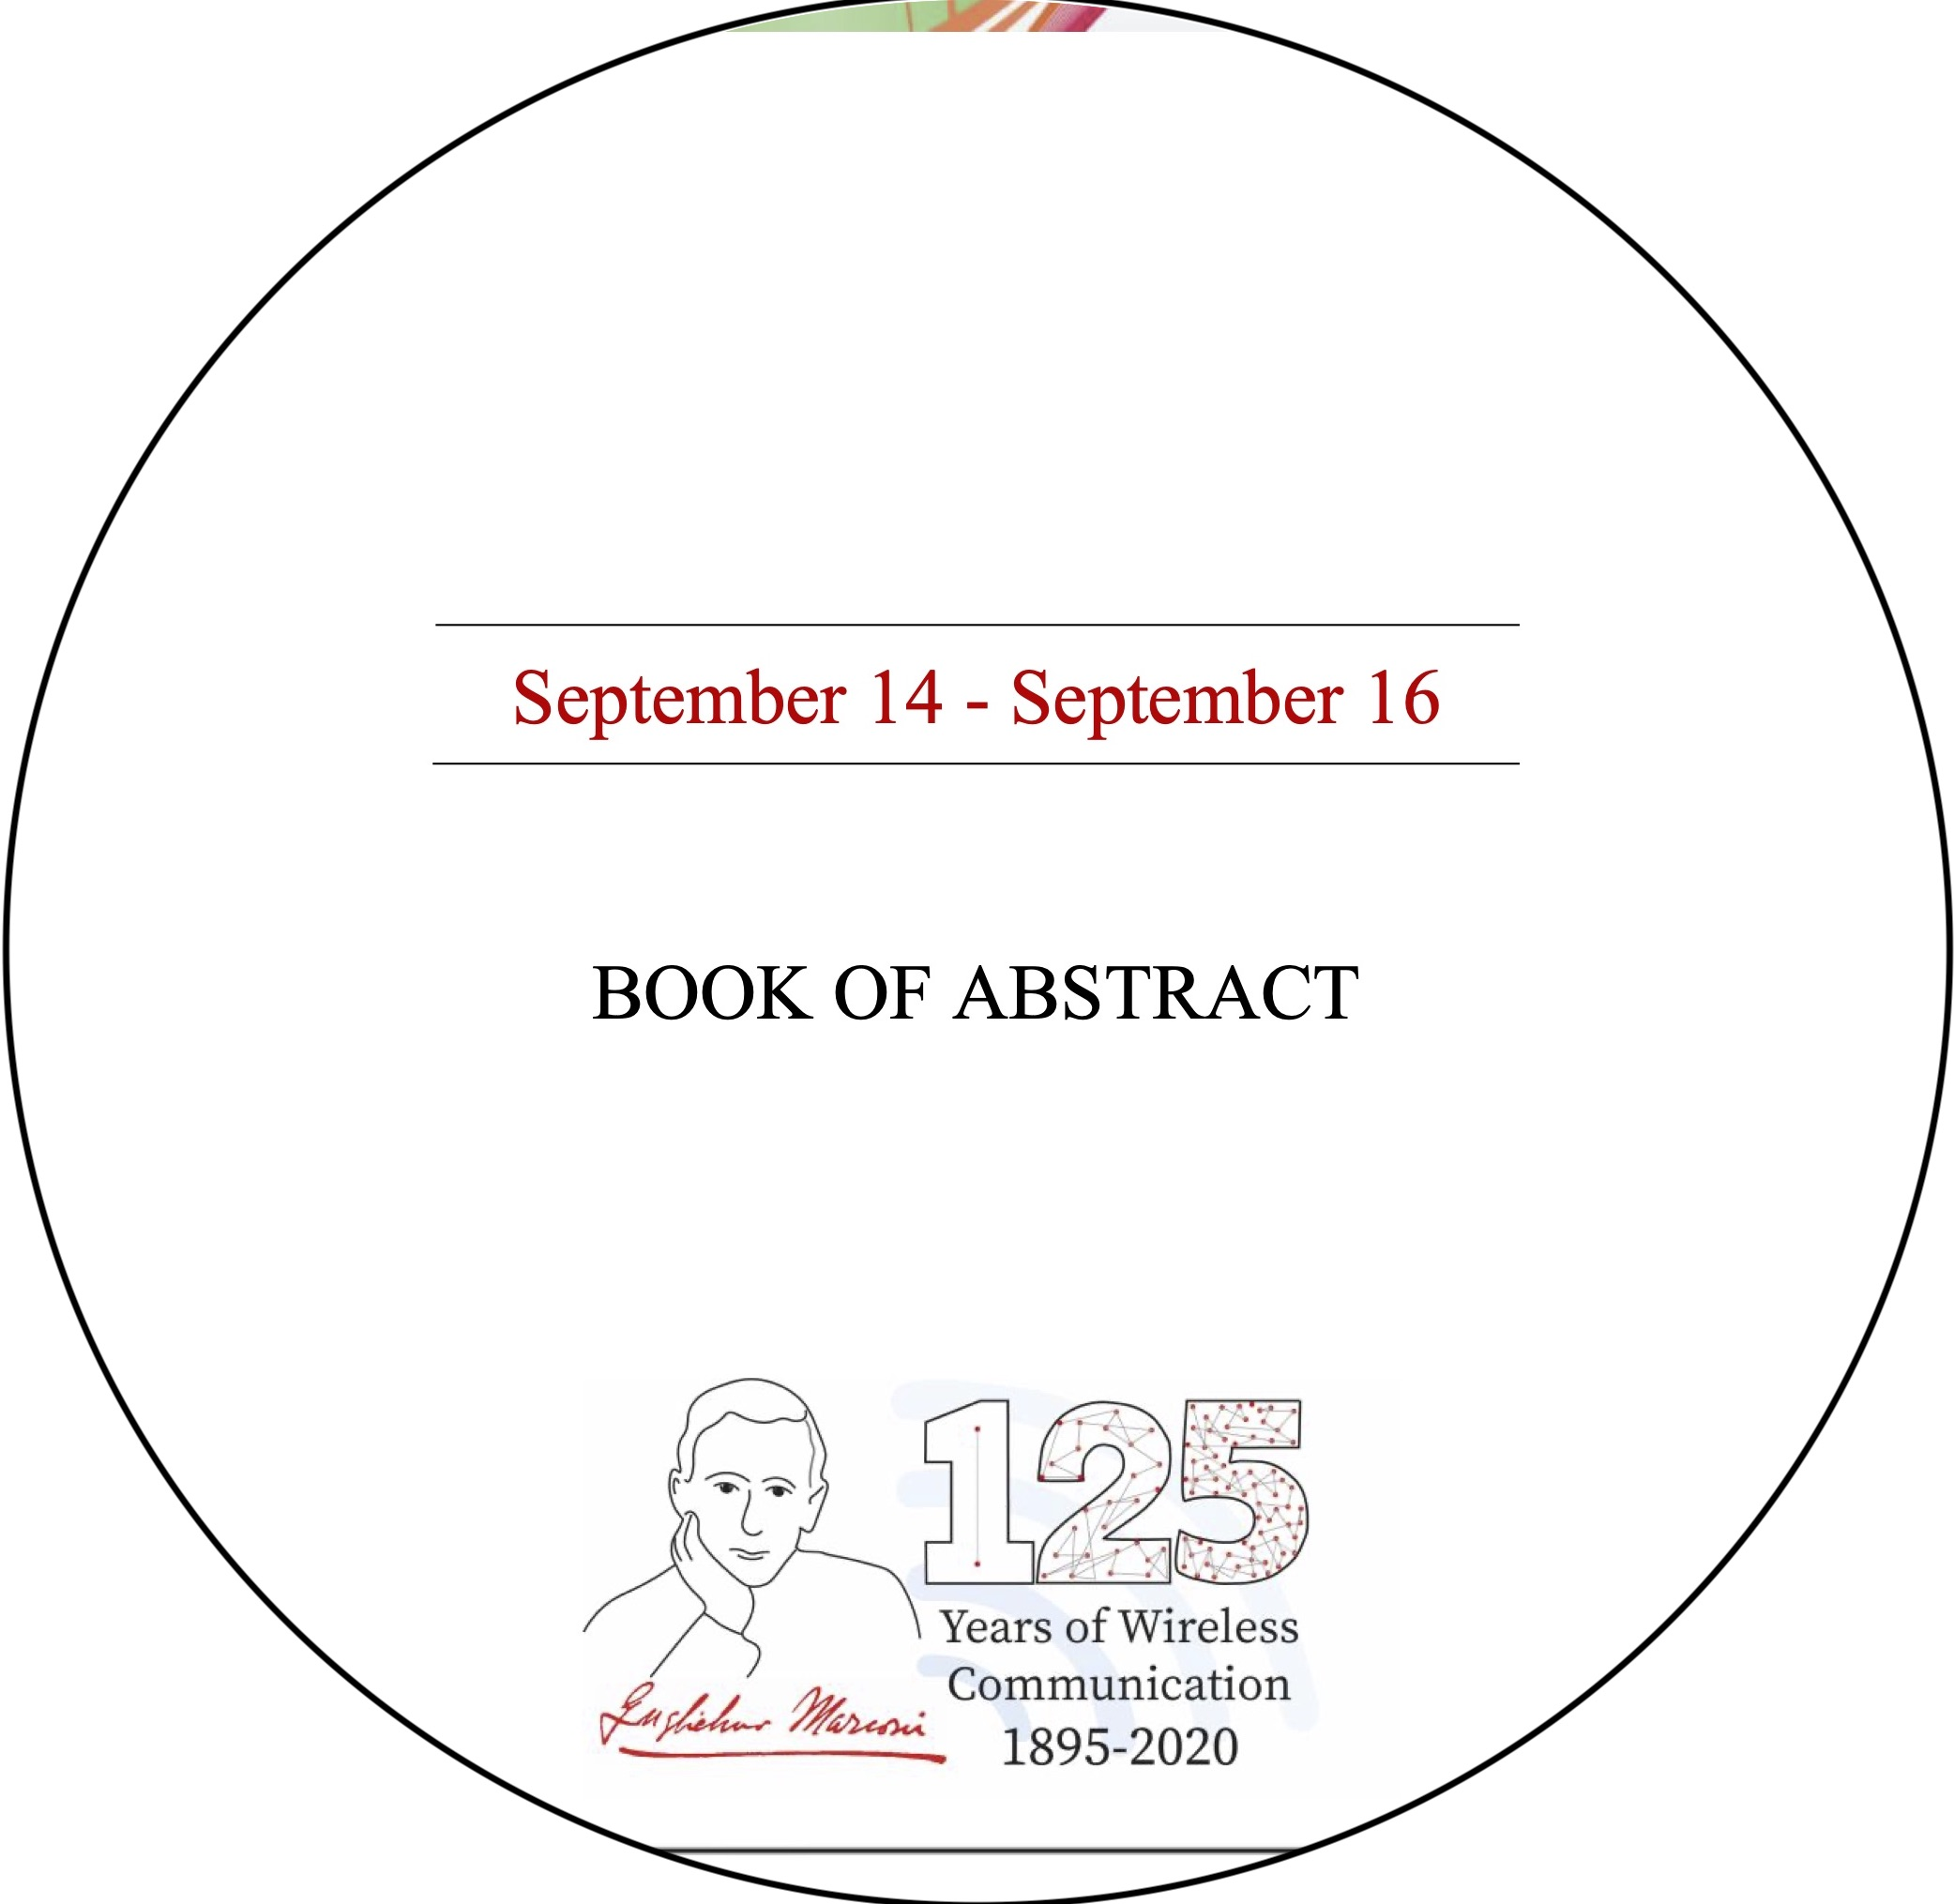 Click on the image to download the Book of abstracts